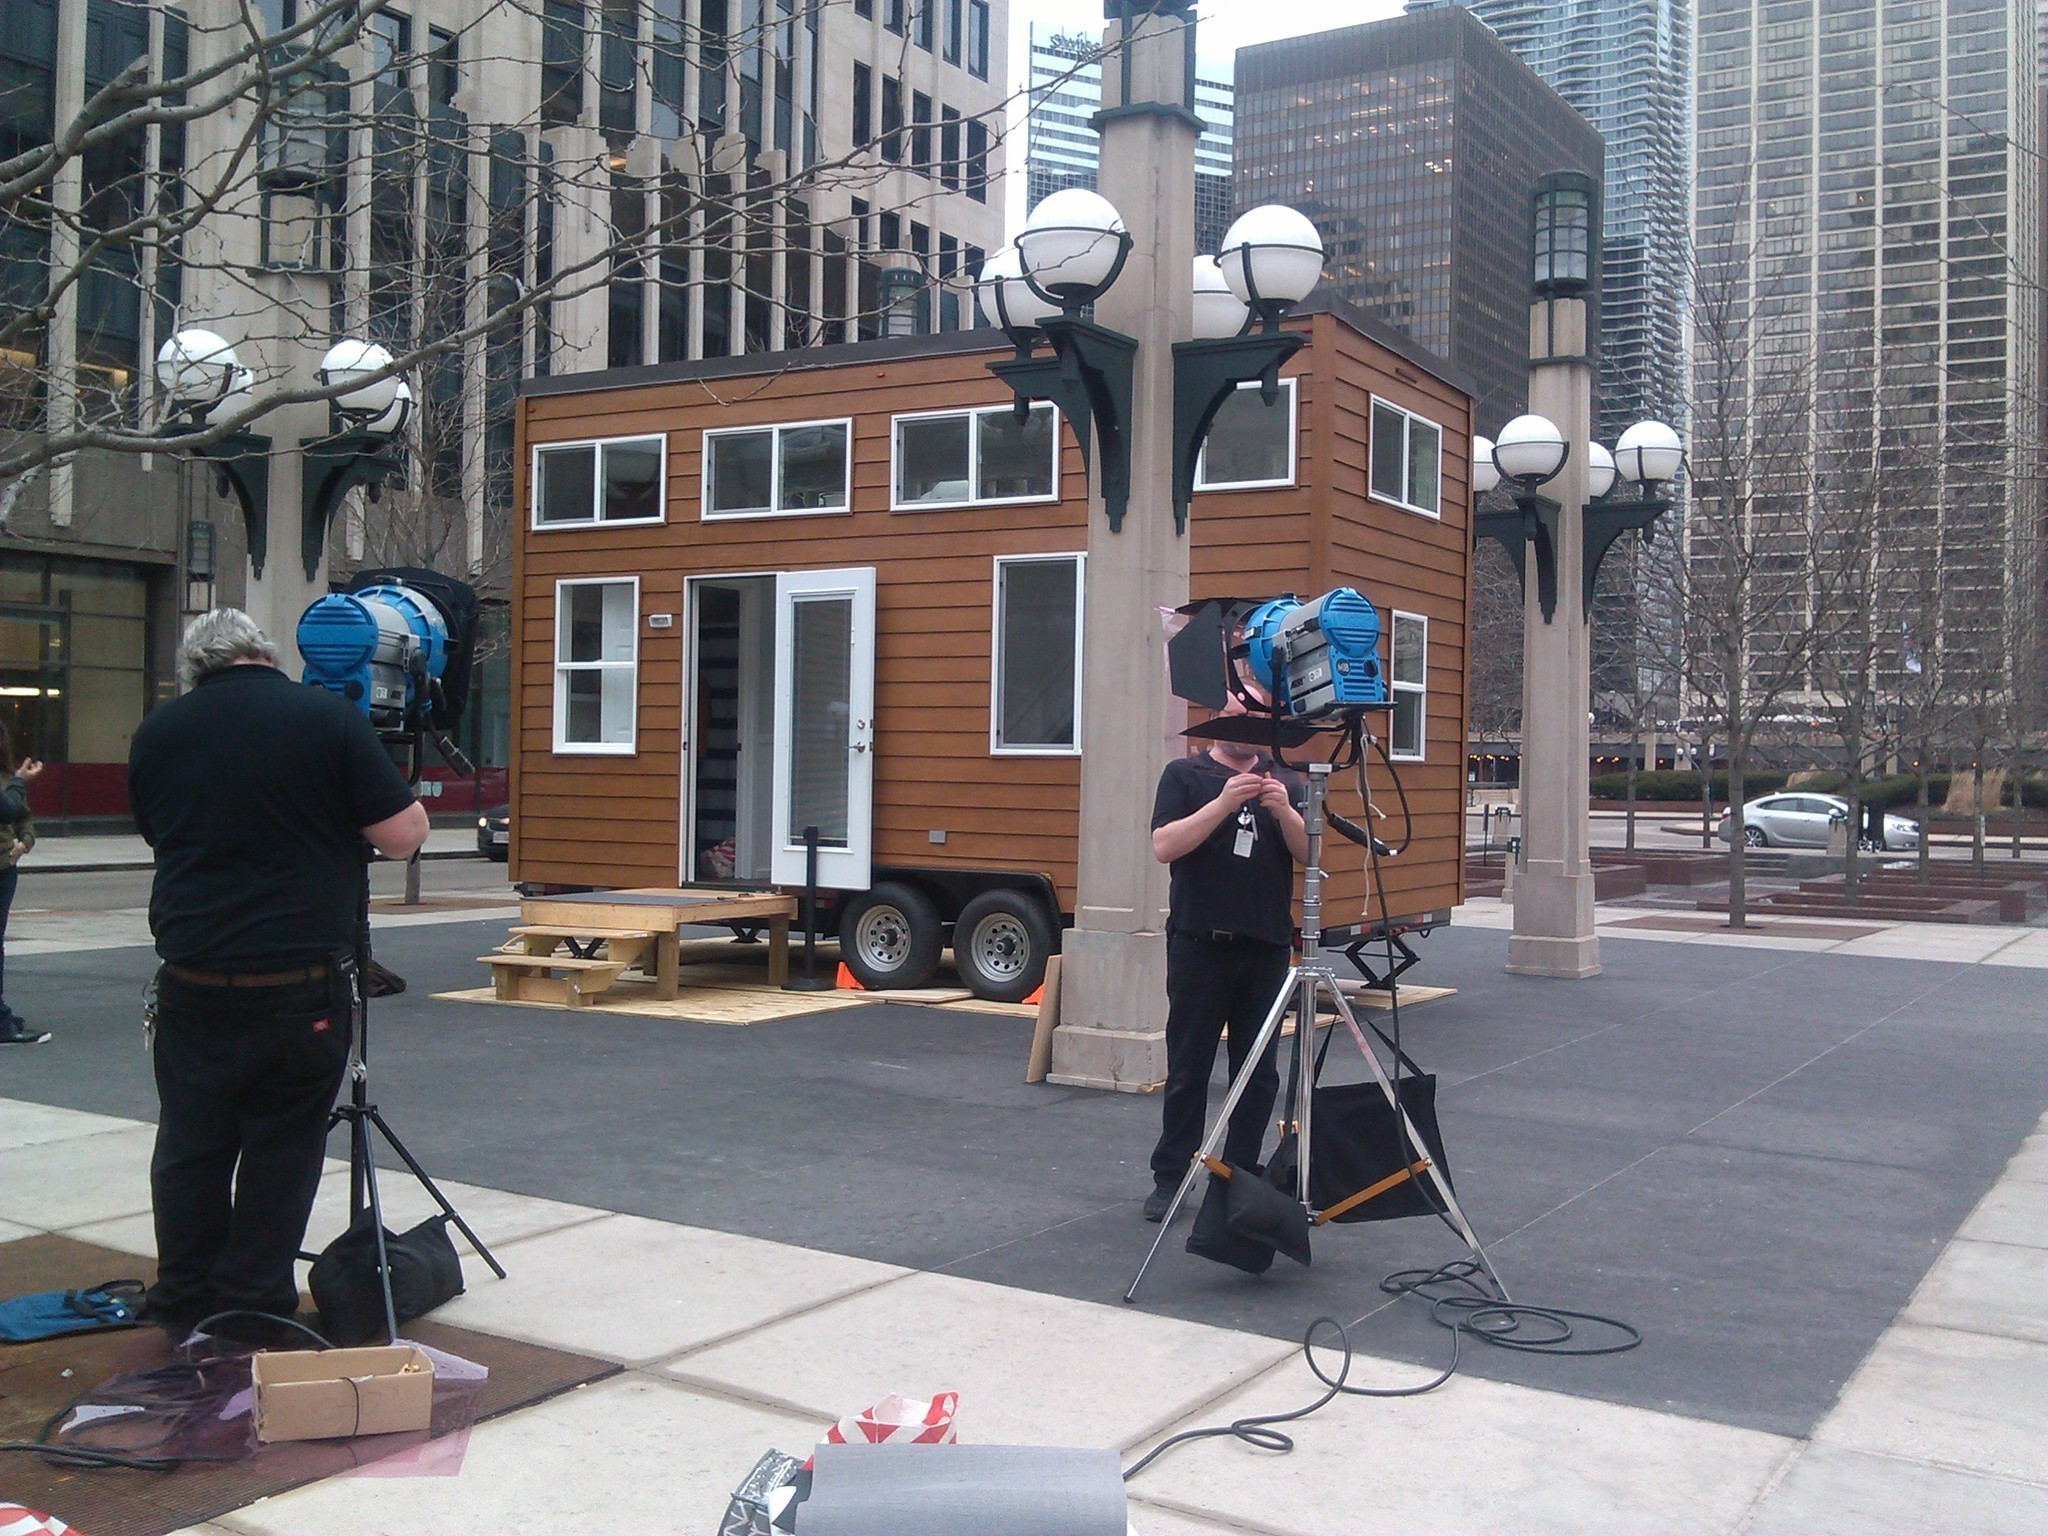 Get a peek inside tiny house set up near NBC Tower for Steve